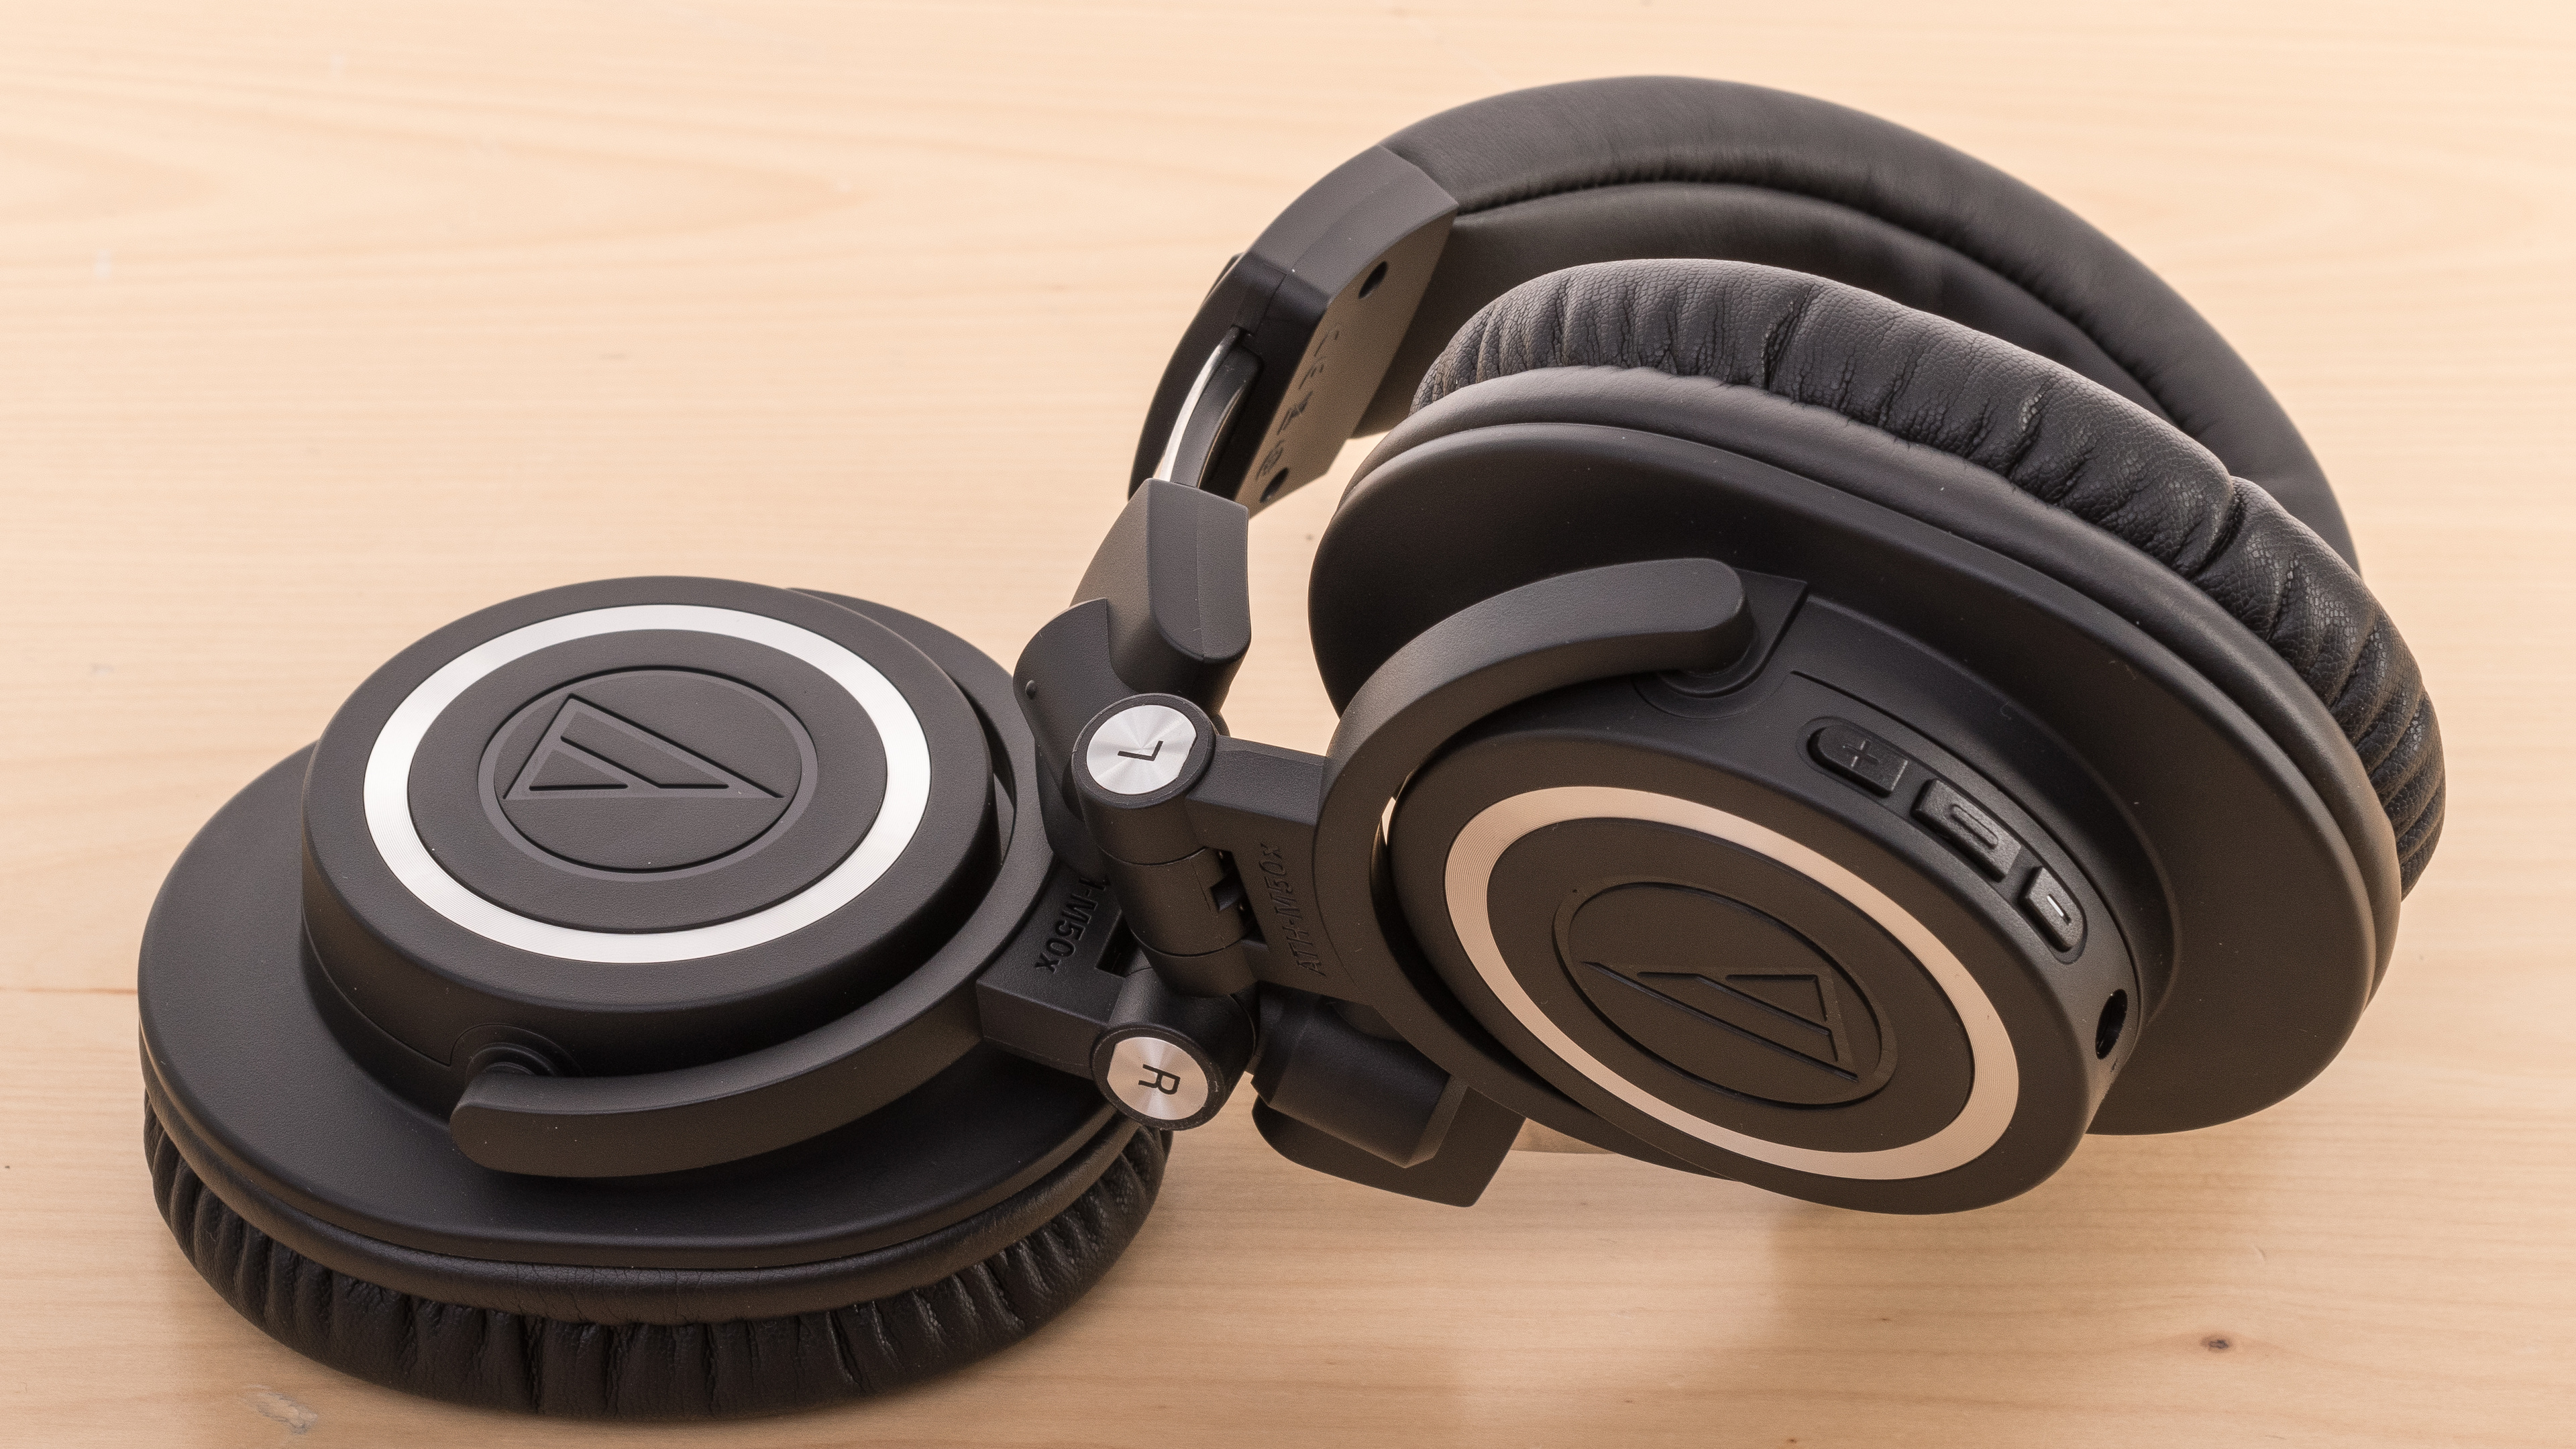 Audio-Technica ATH-M50xBT Review - RTINGS.com